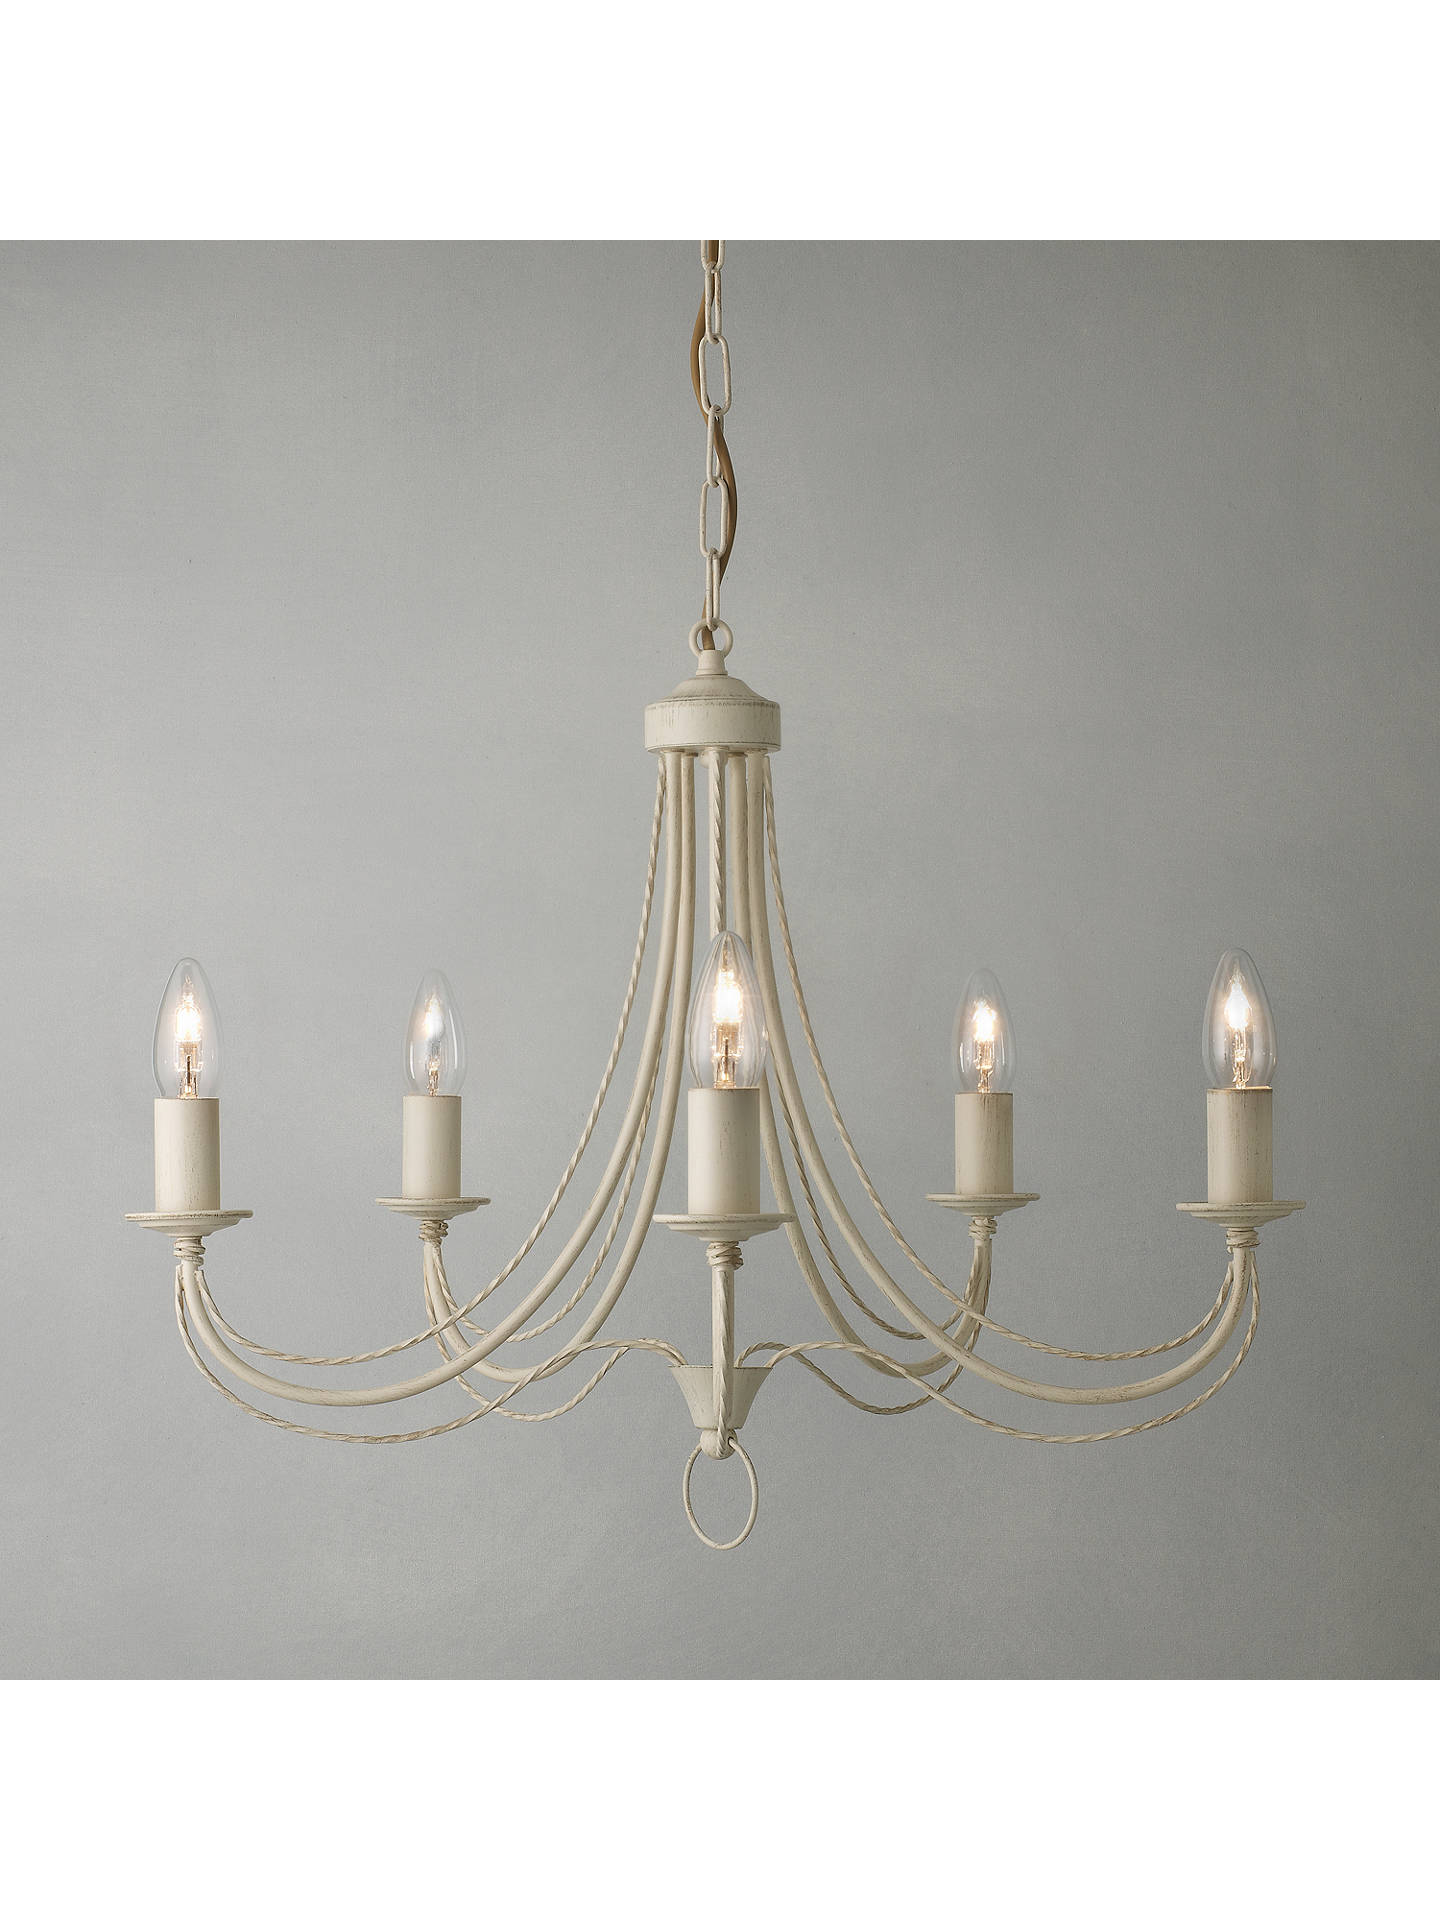 Buy John Lewis & Partners Jubilee 5 Arm Ceiling Light Online at johnlewis.com